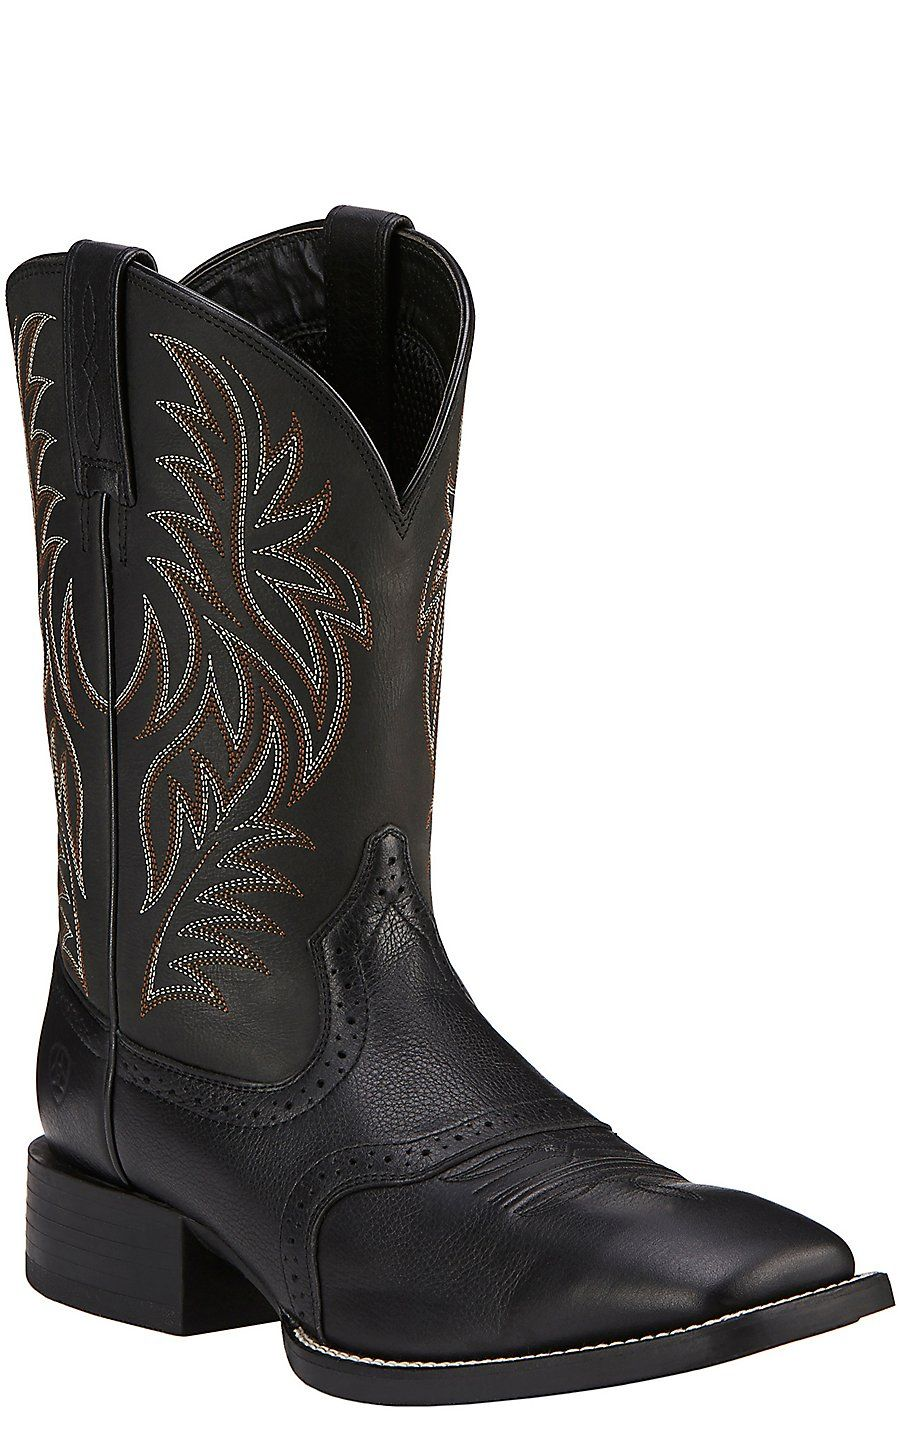 Ariat Sport Outfitter Men's Black Double Welt Square Toe Western Boots | Cavender's